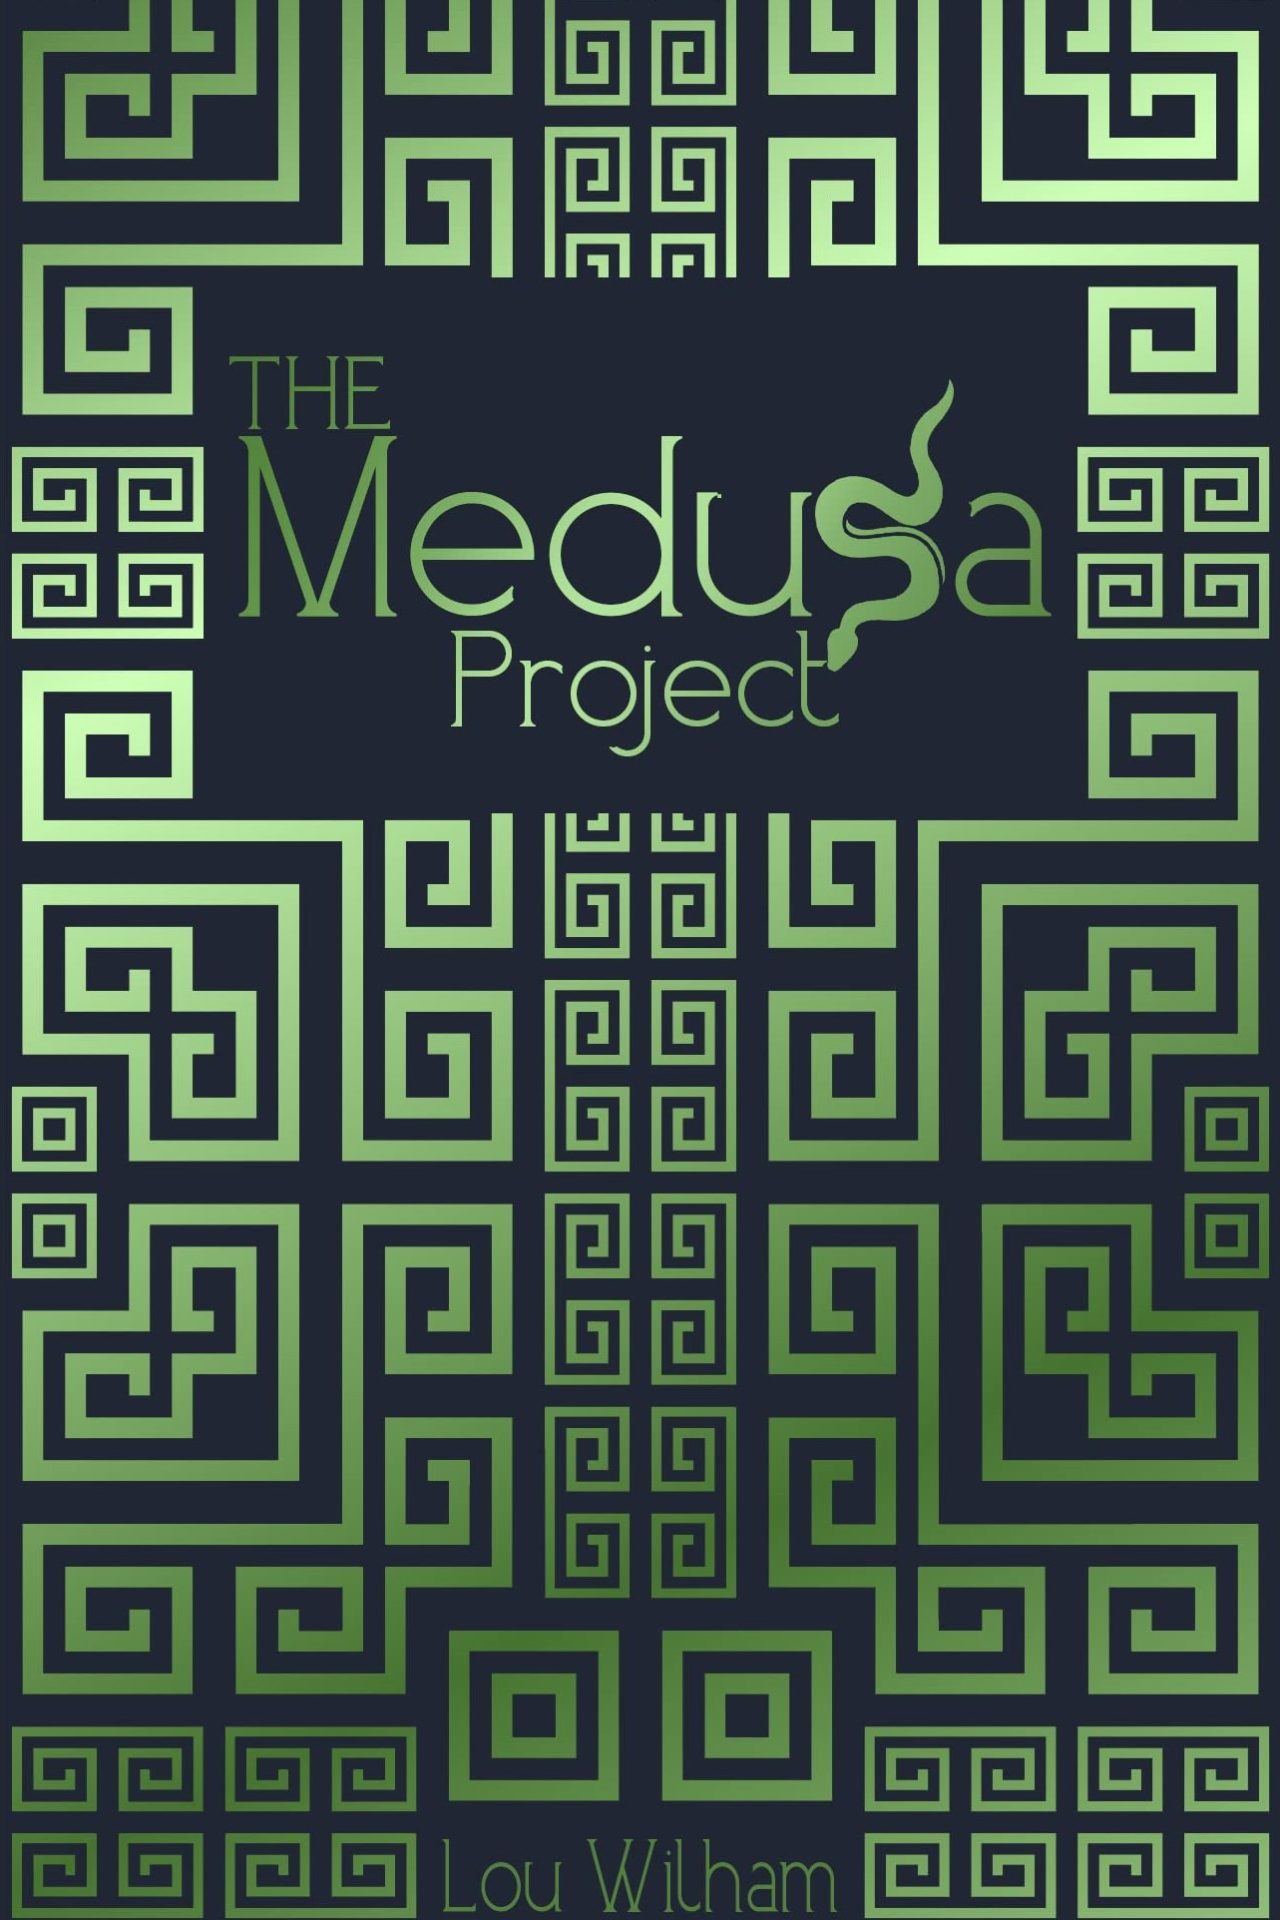 The Medusa Project – Lou Wilham